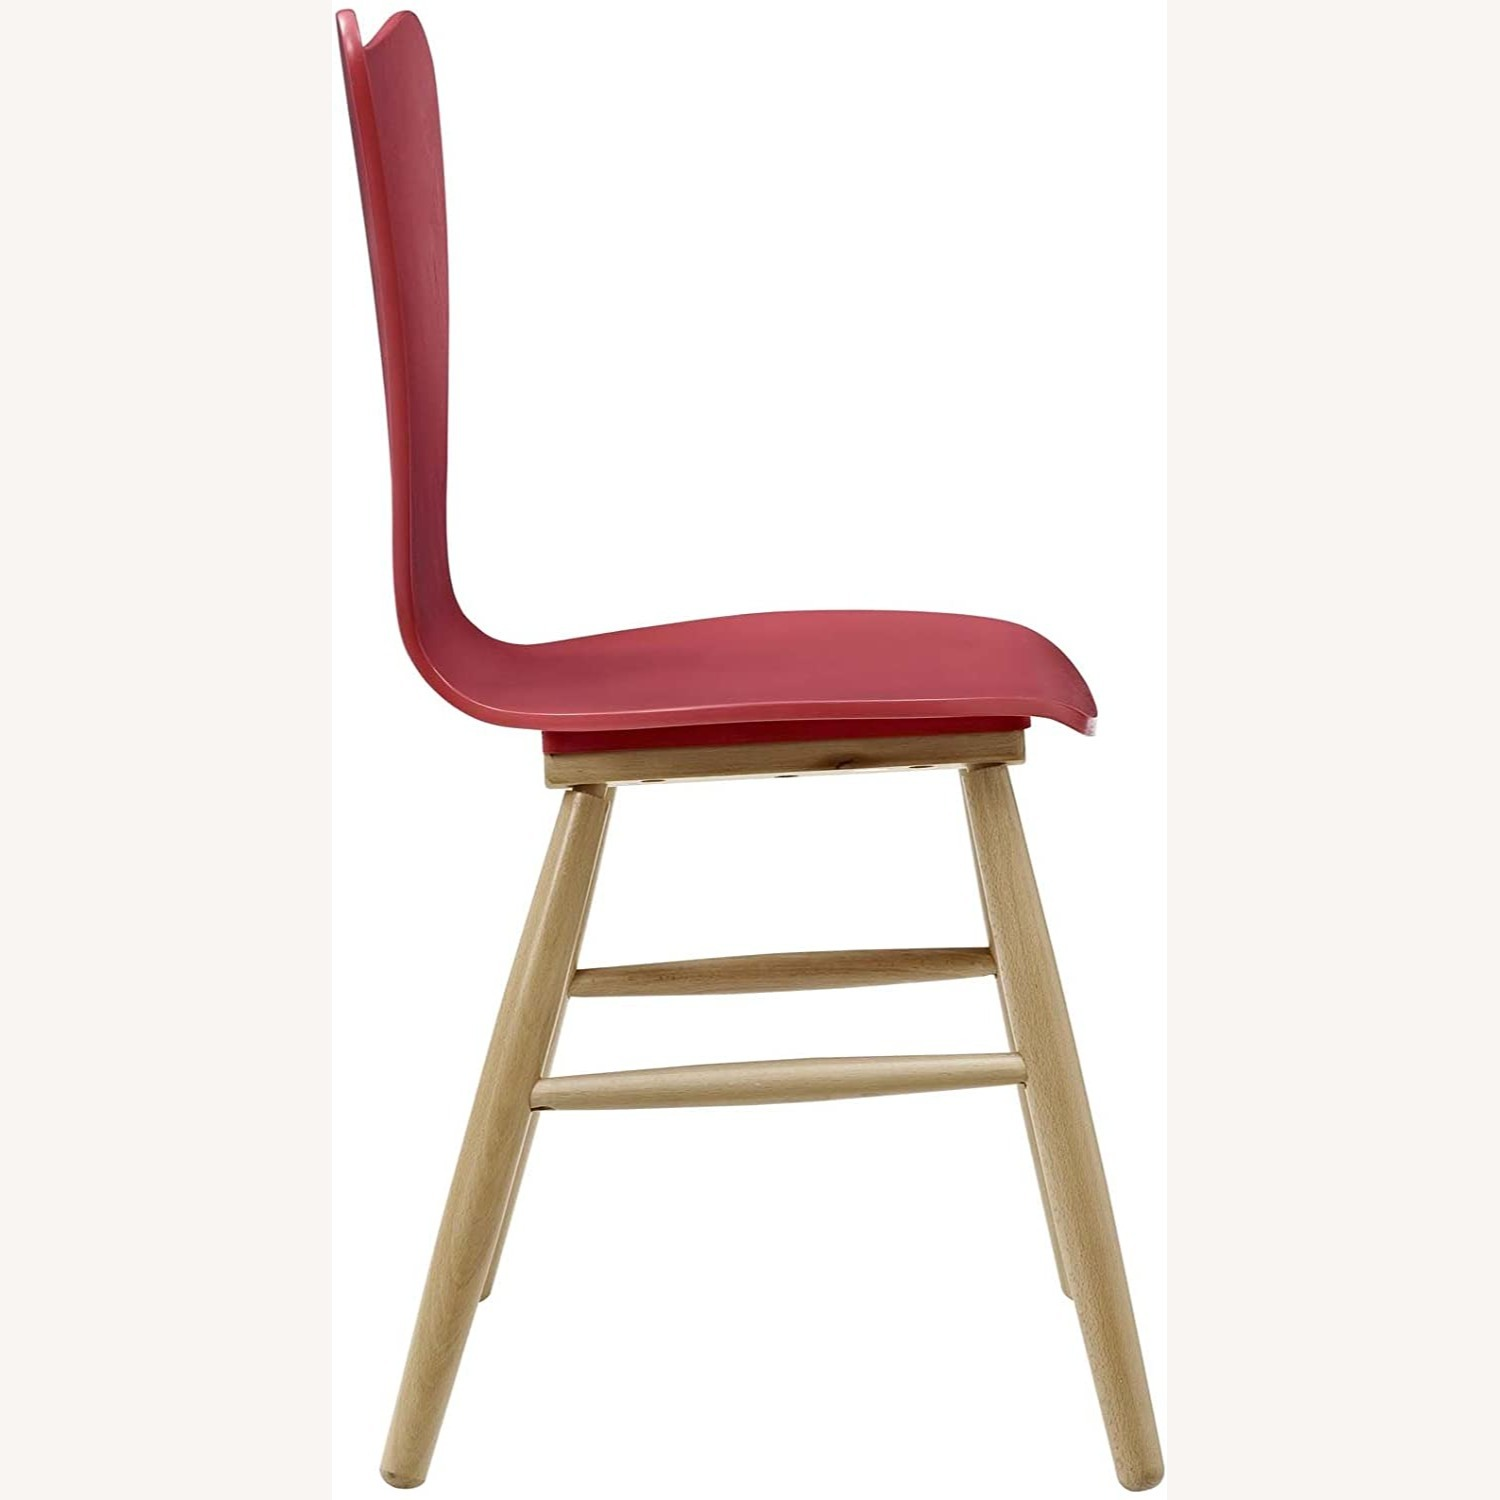 Mid-Century Style Dining Chair In Red Finish - image-1